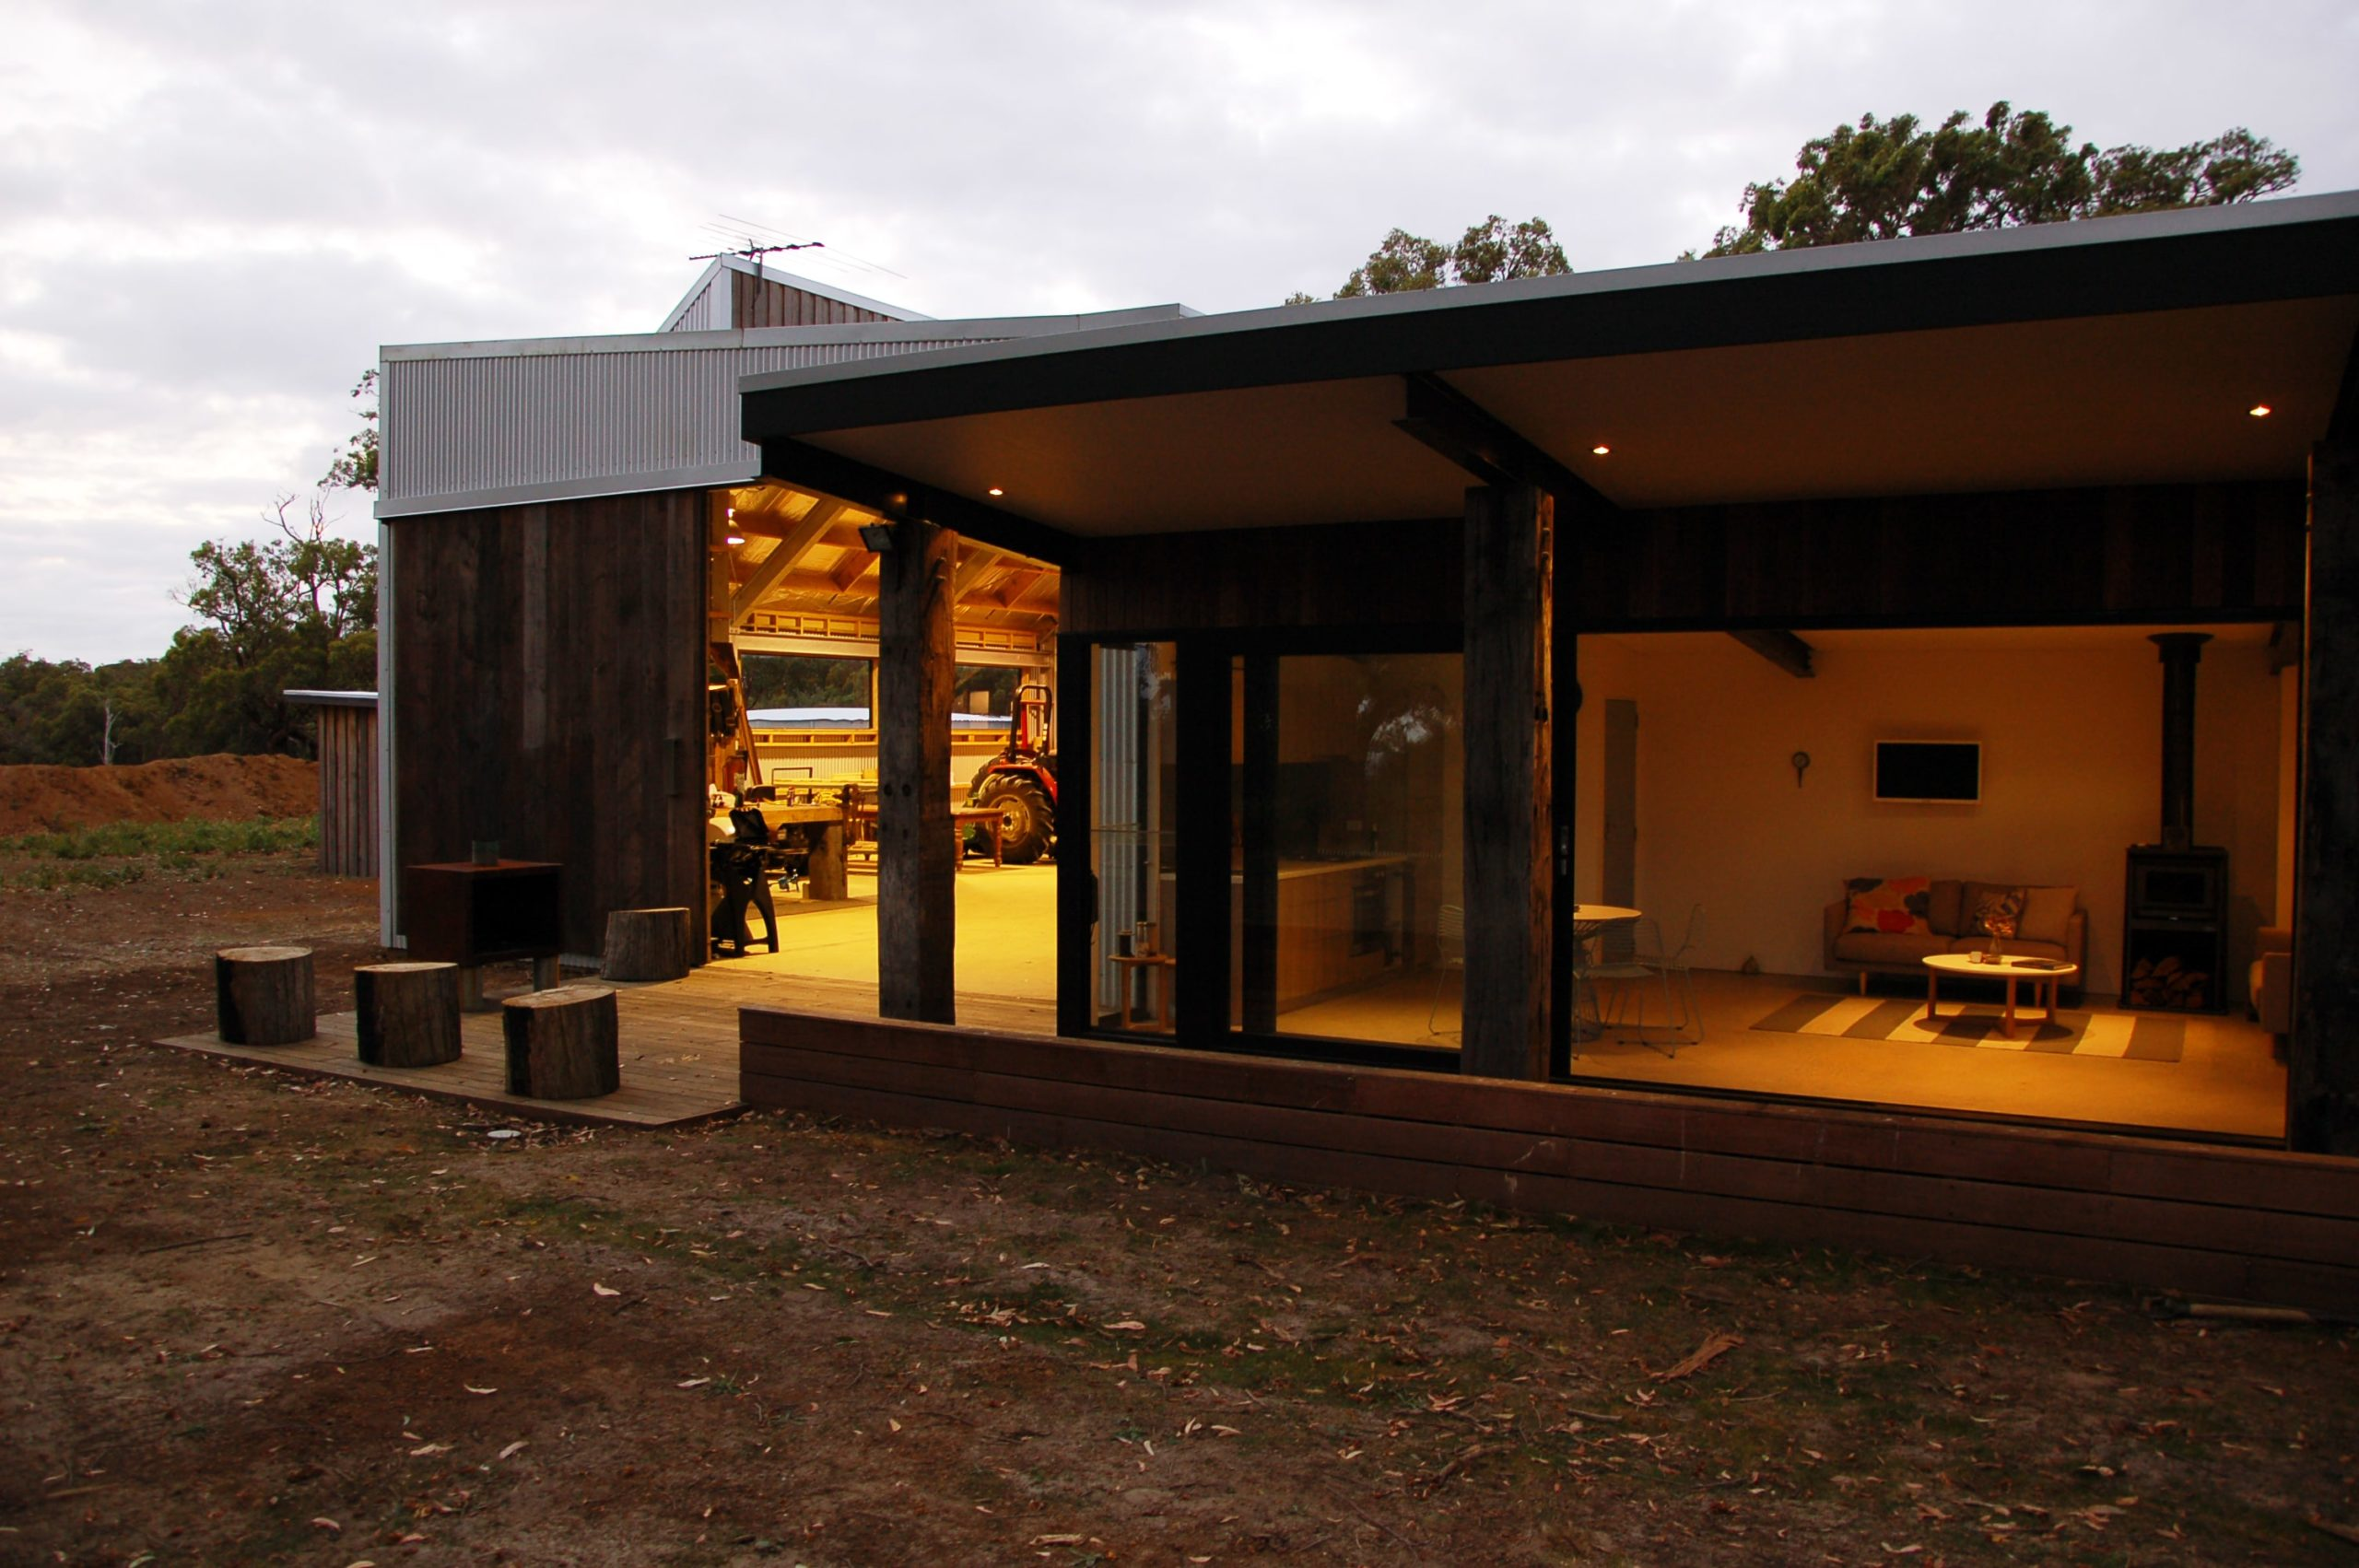 This view from the back of the house reveals the great room inside with a living room and kitchen. On the left side, there is a rustic sitting area with tree stumps just outside the large door of the shed and garage.